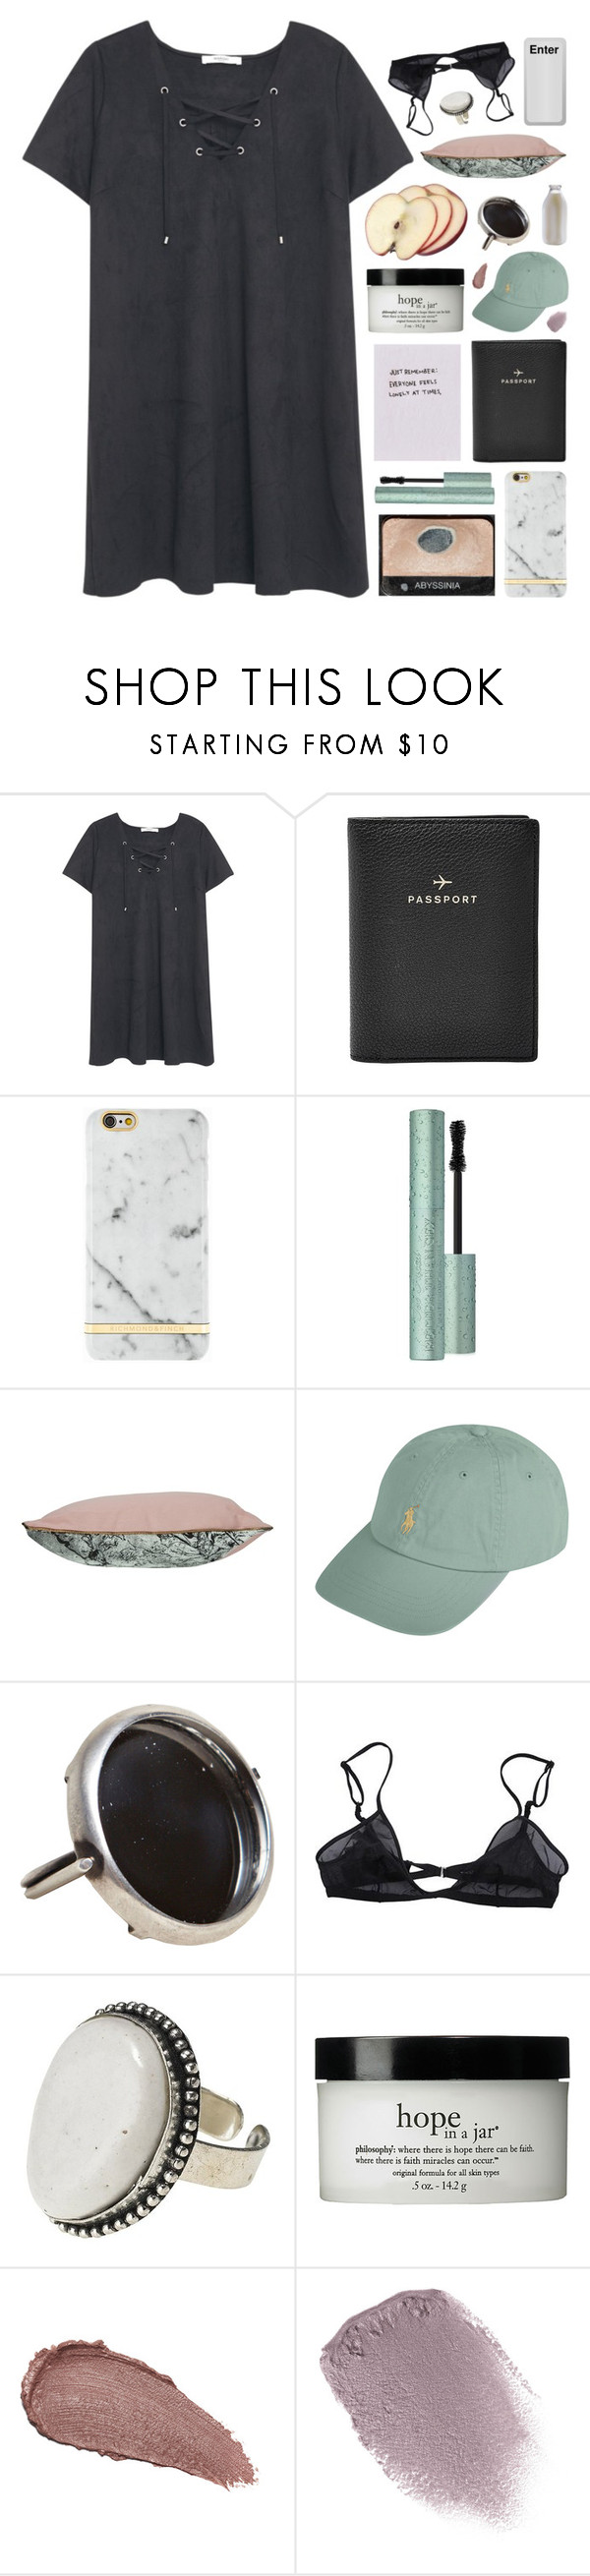 """""""*has a breakdown and is fine 5 mins later*"""" by annamari-a ❤ liked on Polyvore featuring MANGO, FOSSIL, NARS Cosmetics, Richmond & Finch, Too Faced Cosmetics, Polo Ralph Lauren, Ann Demeulemeester, Bllack by Noir, People Tree and philosophy"""